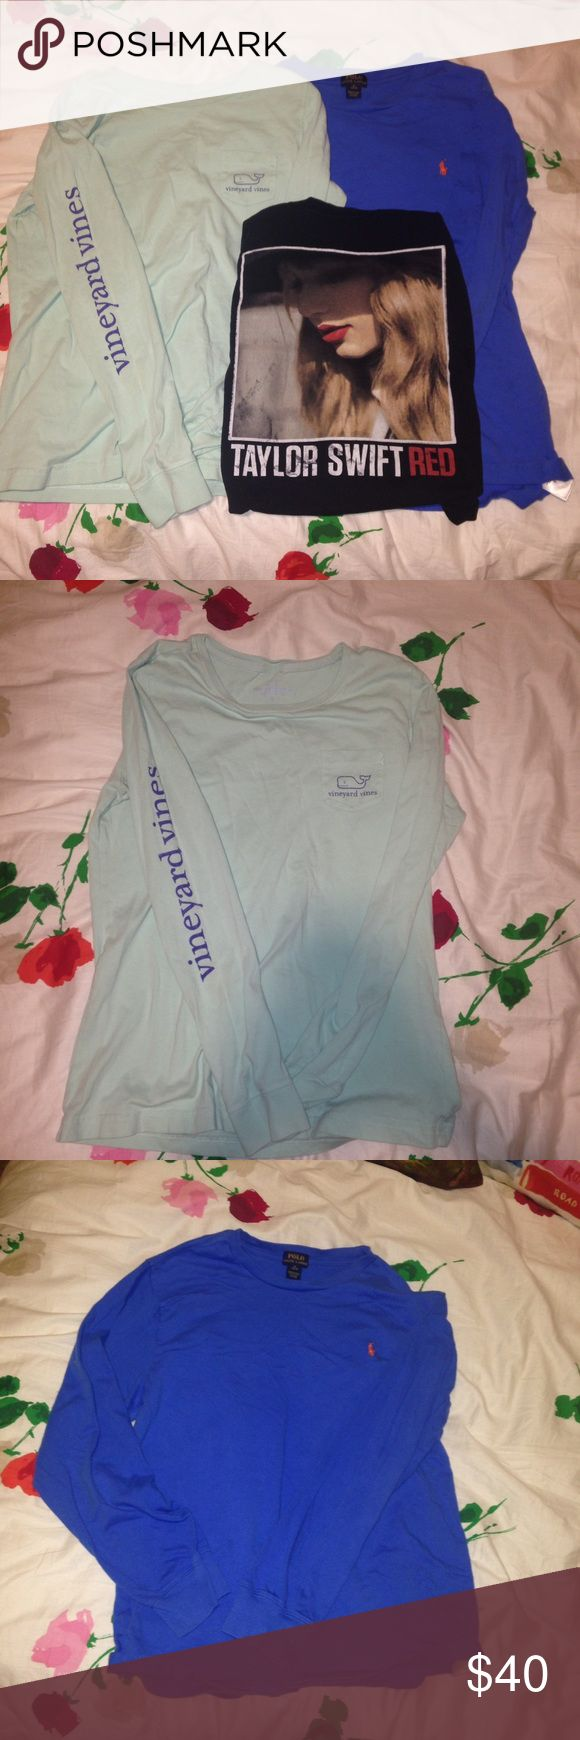 tshirt bundle there is one vineyard vines shirt, a polo t shirt, and a taylor swift red tour shirt. the vineyard vines shirt is a women's small and it is mint colored with a navy outline of the whale and words. the taylor swift shirt is from the red tour and on the back it has all of the dates form the concert on it. and the polo shirt is a blue color with an orange horse logo it is a kids xl(18-20). all the shirts are in great condition!!! feel free to make offers!! Vineyard Vines Tops Tees…